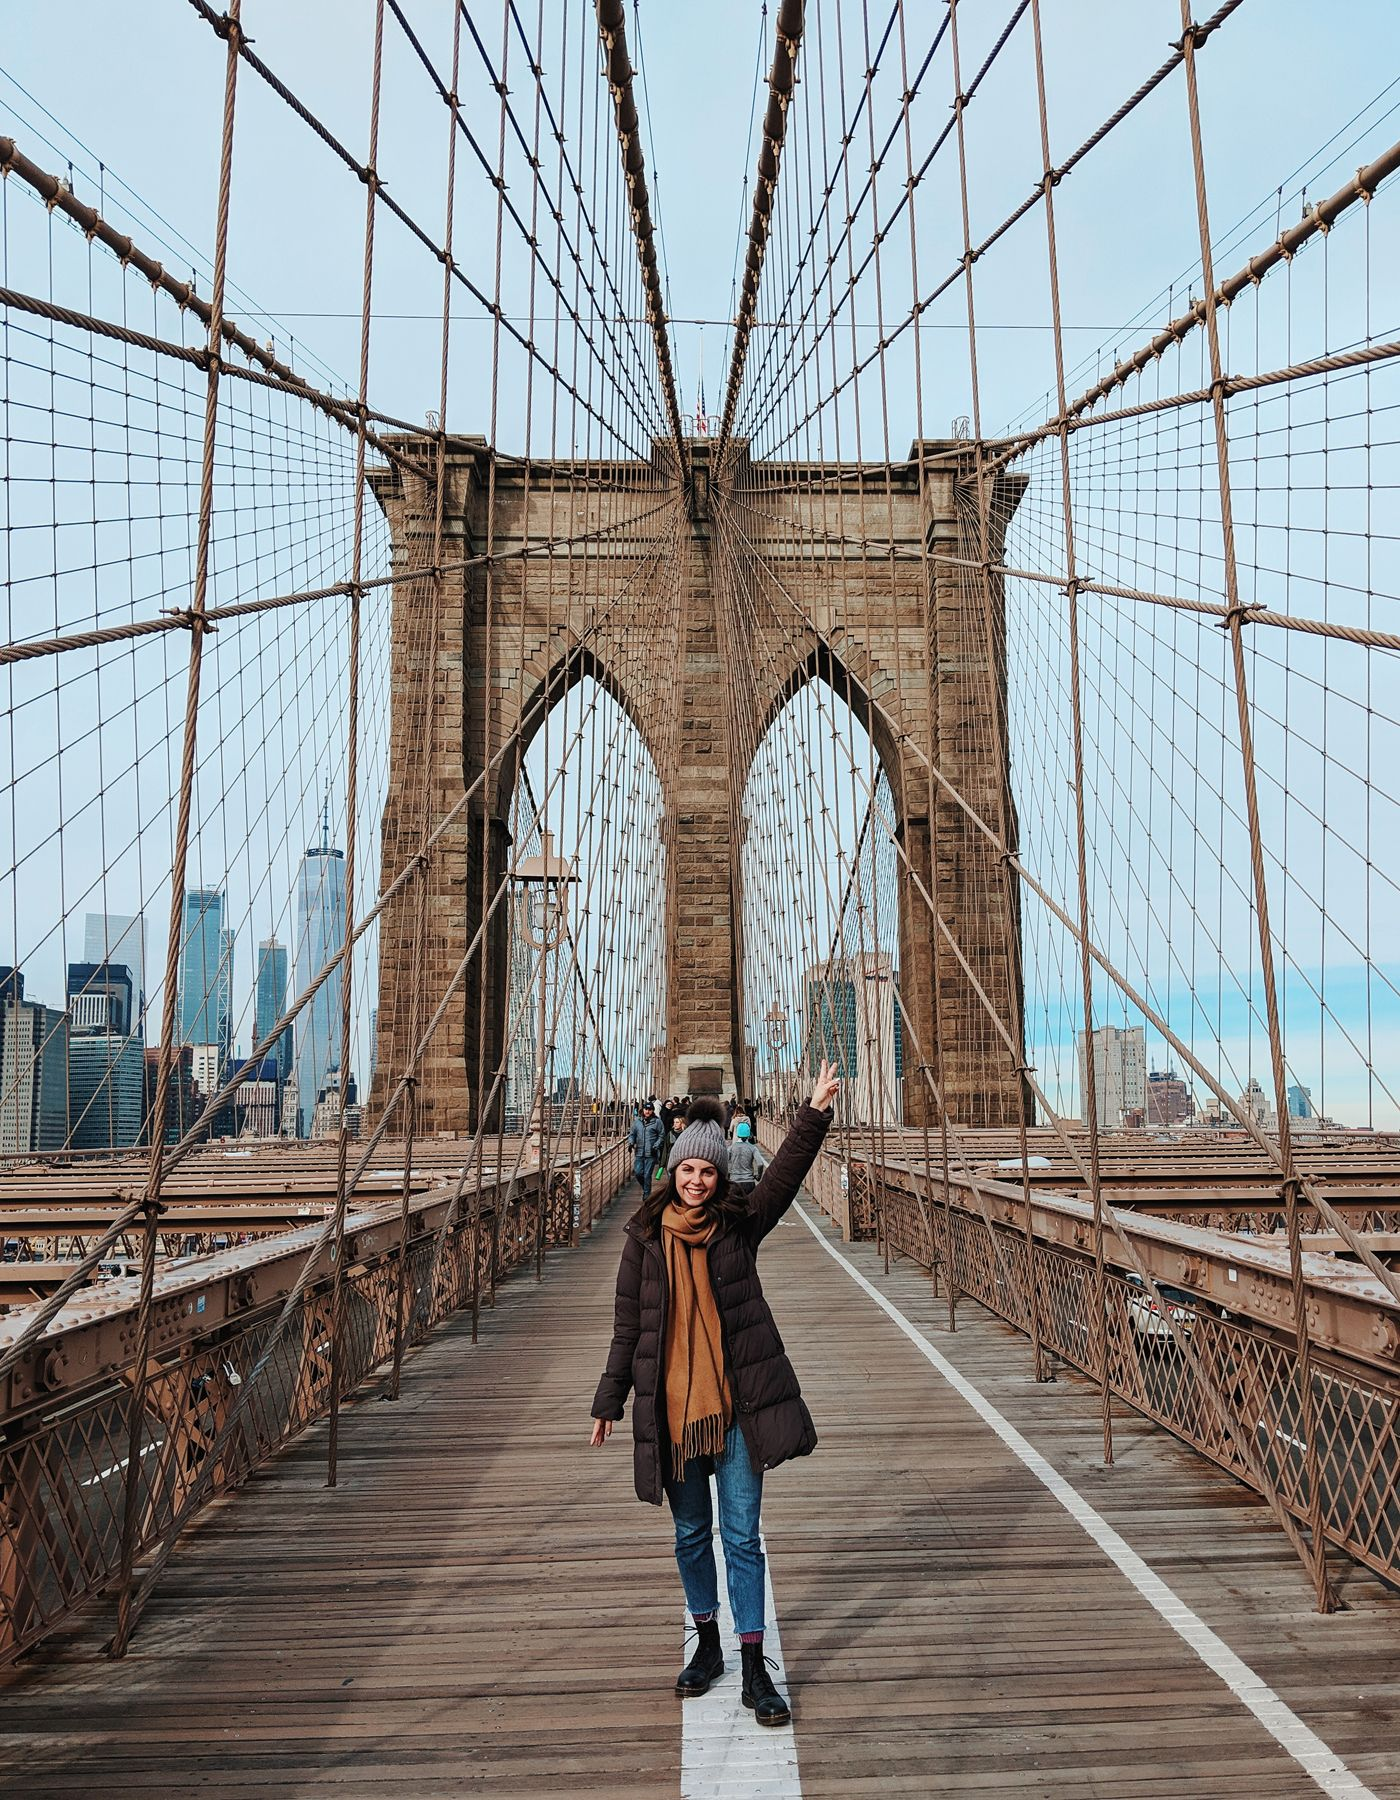 Read My Favourite Things To Do In New York, To Get A Taste